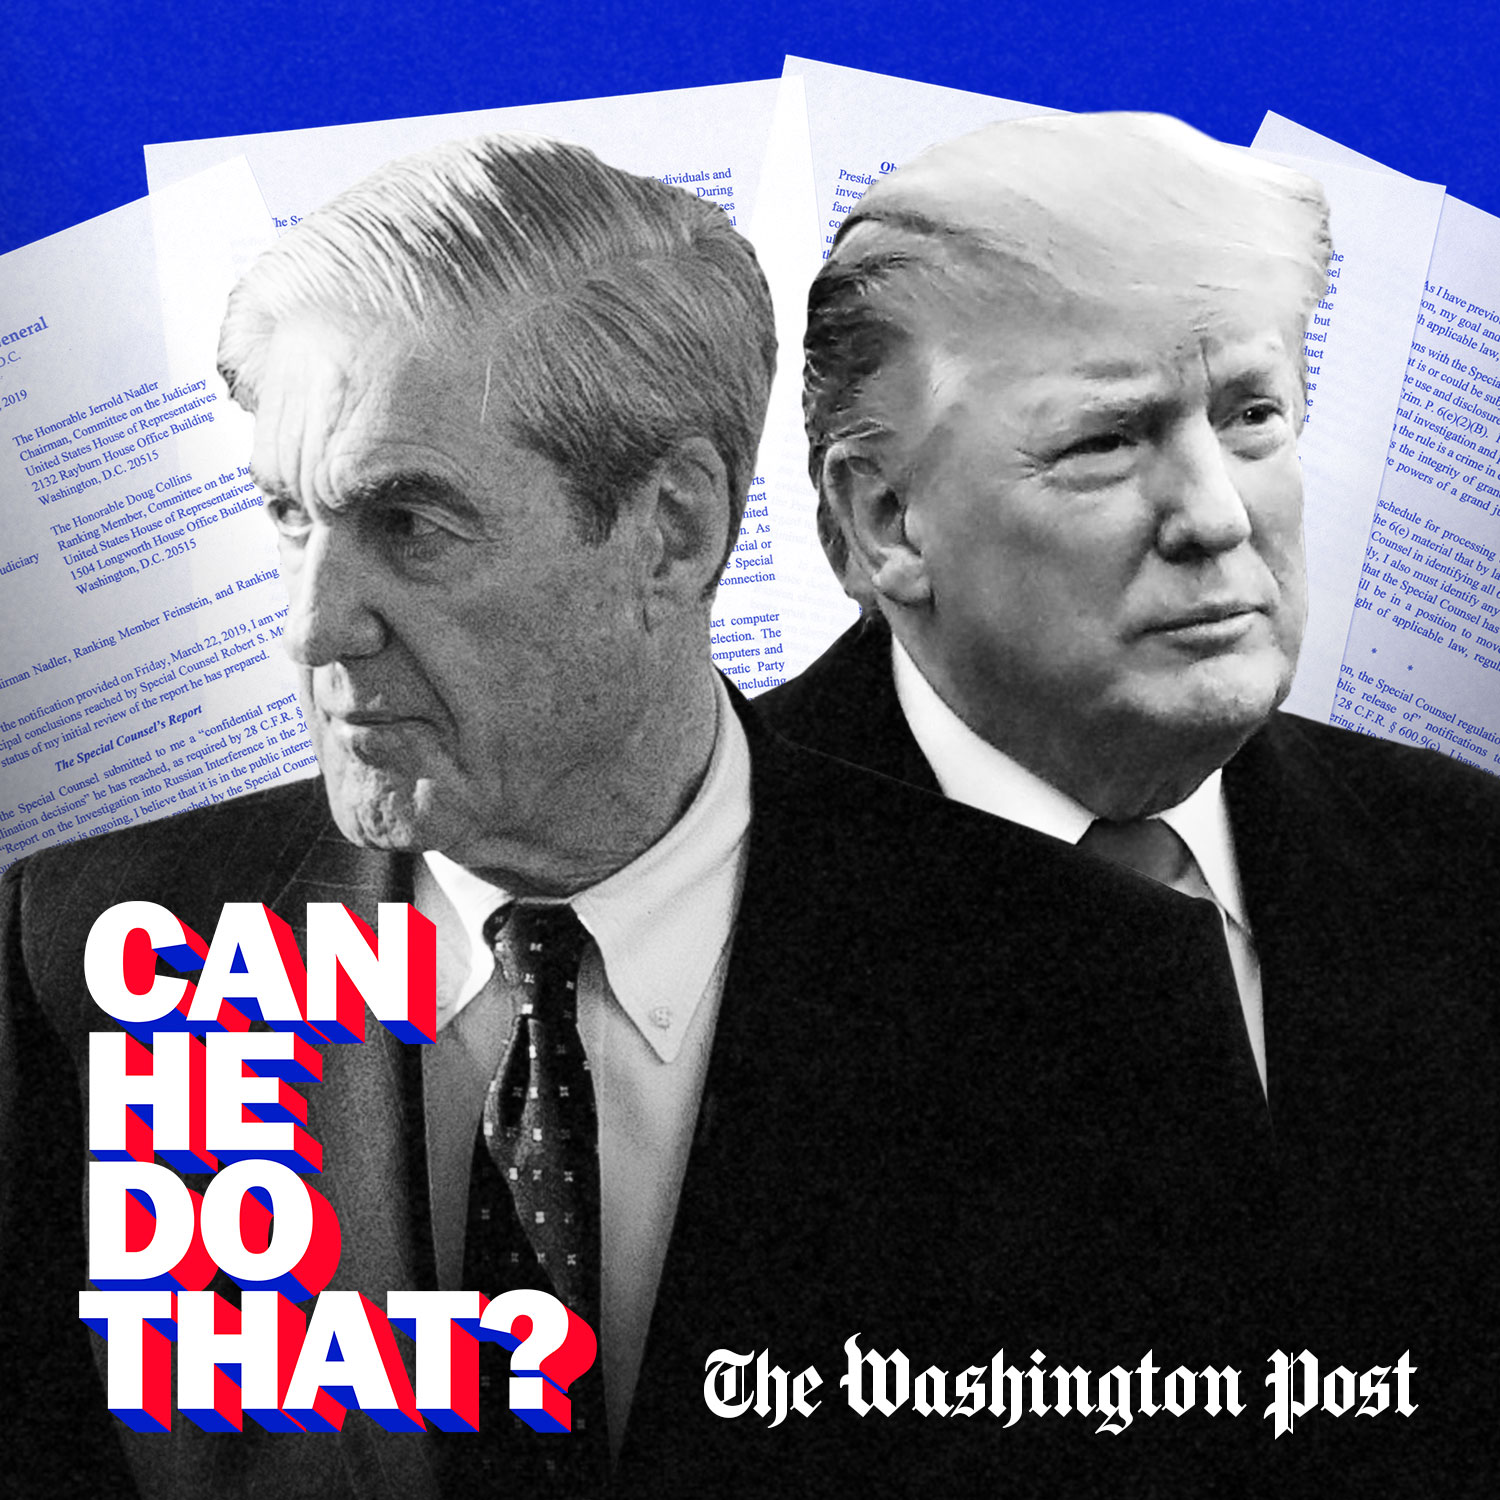 Mueller report: What we still don't know